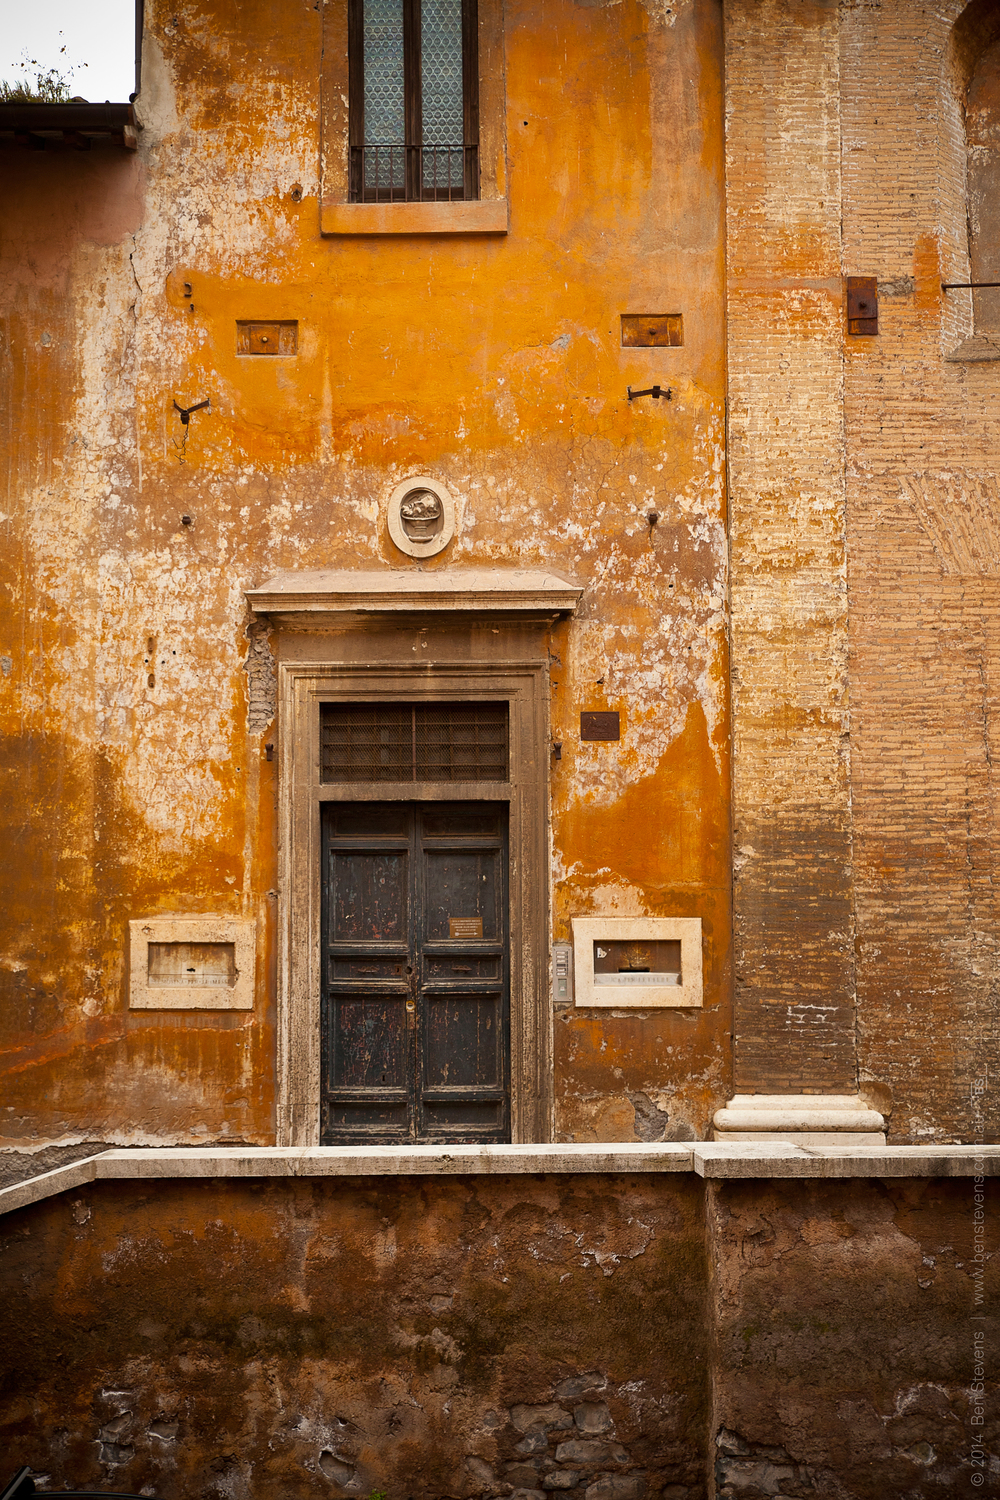 Roman Apartment |Rome, Italy March 2014 One of the many ancient doorways in Rome that conceal theirmore modern interiors. Purchase printshere